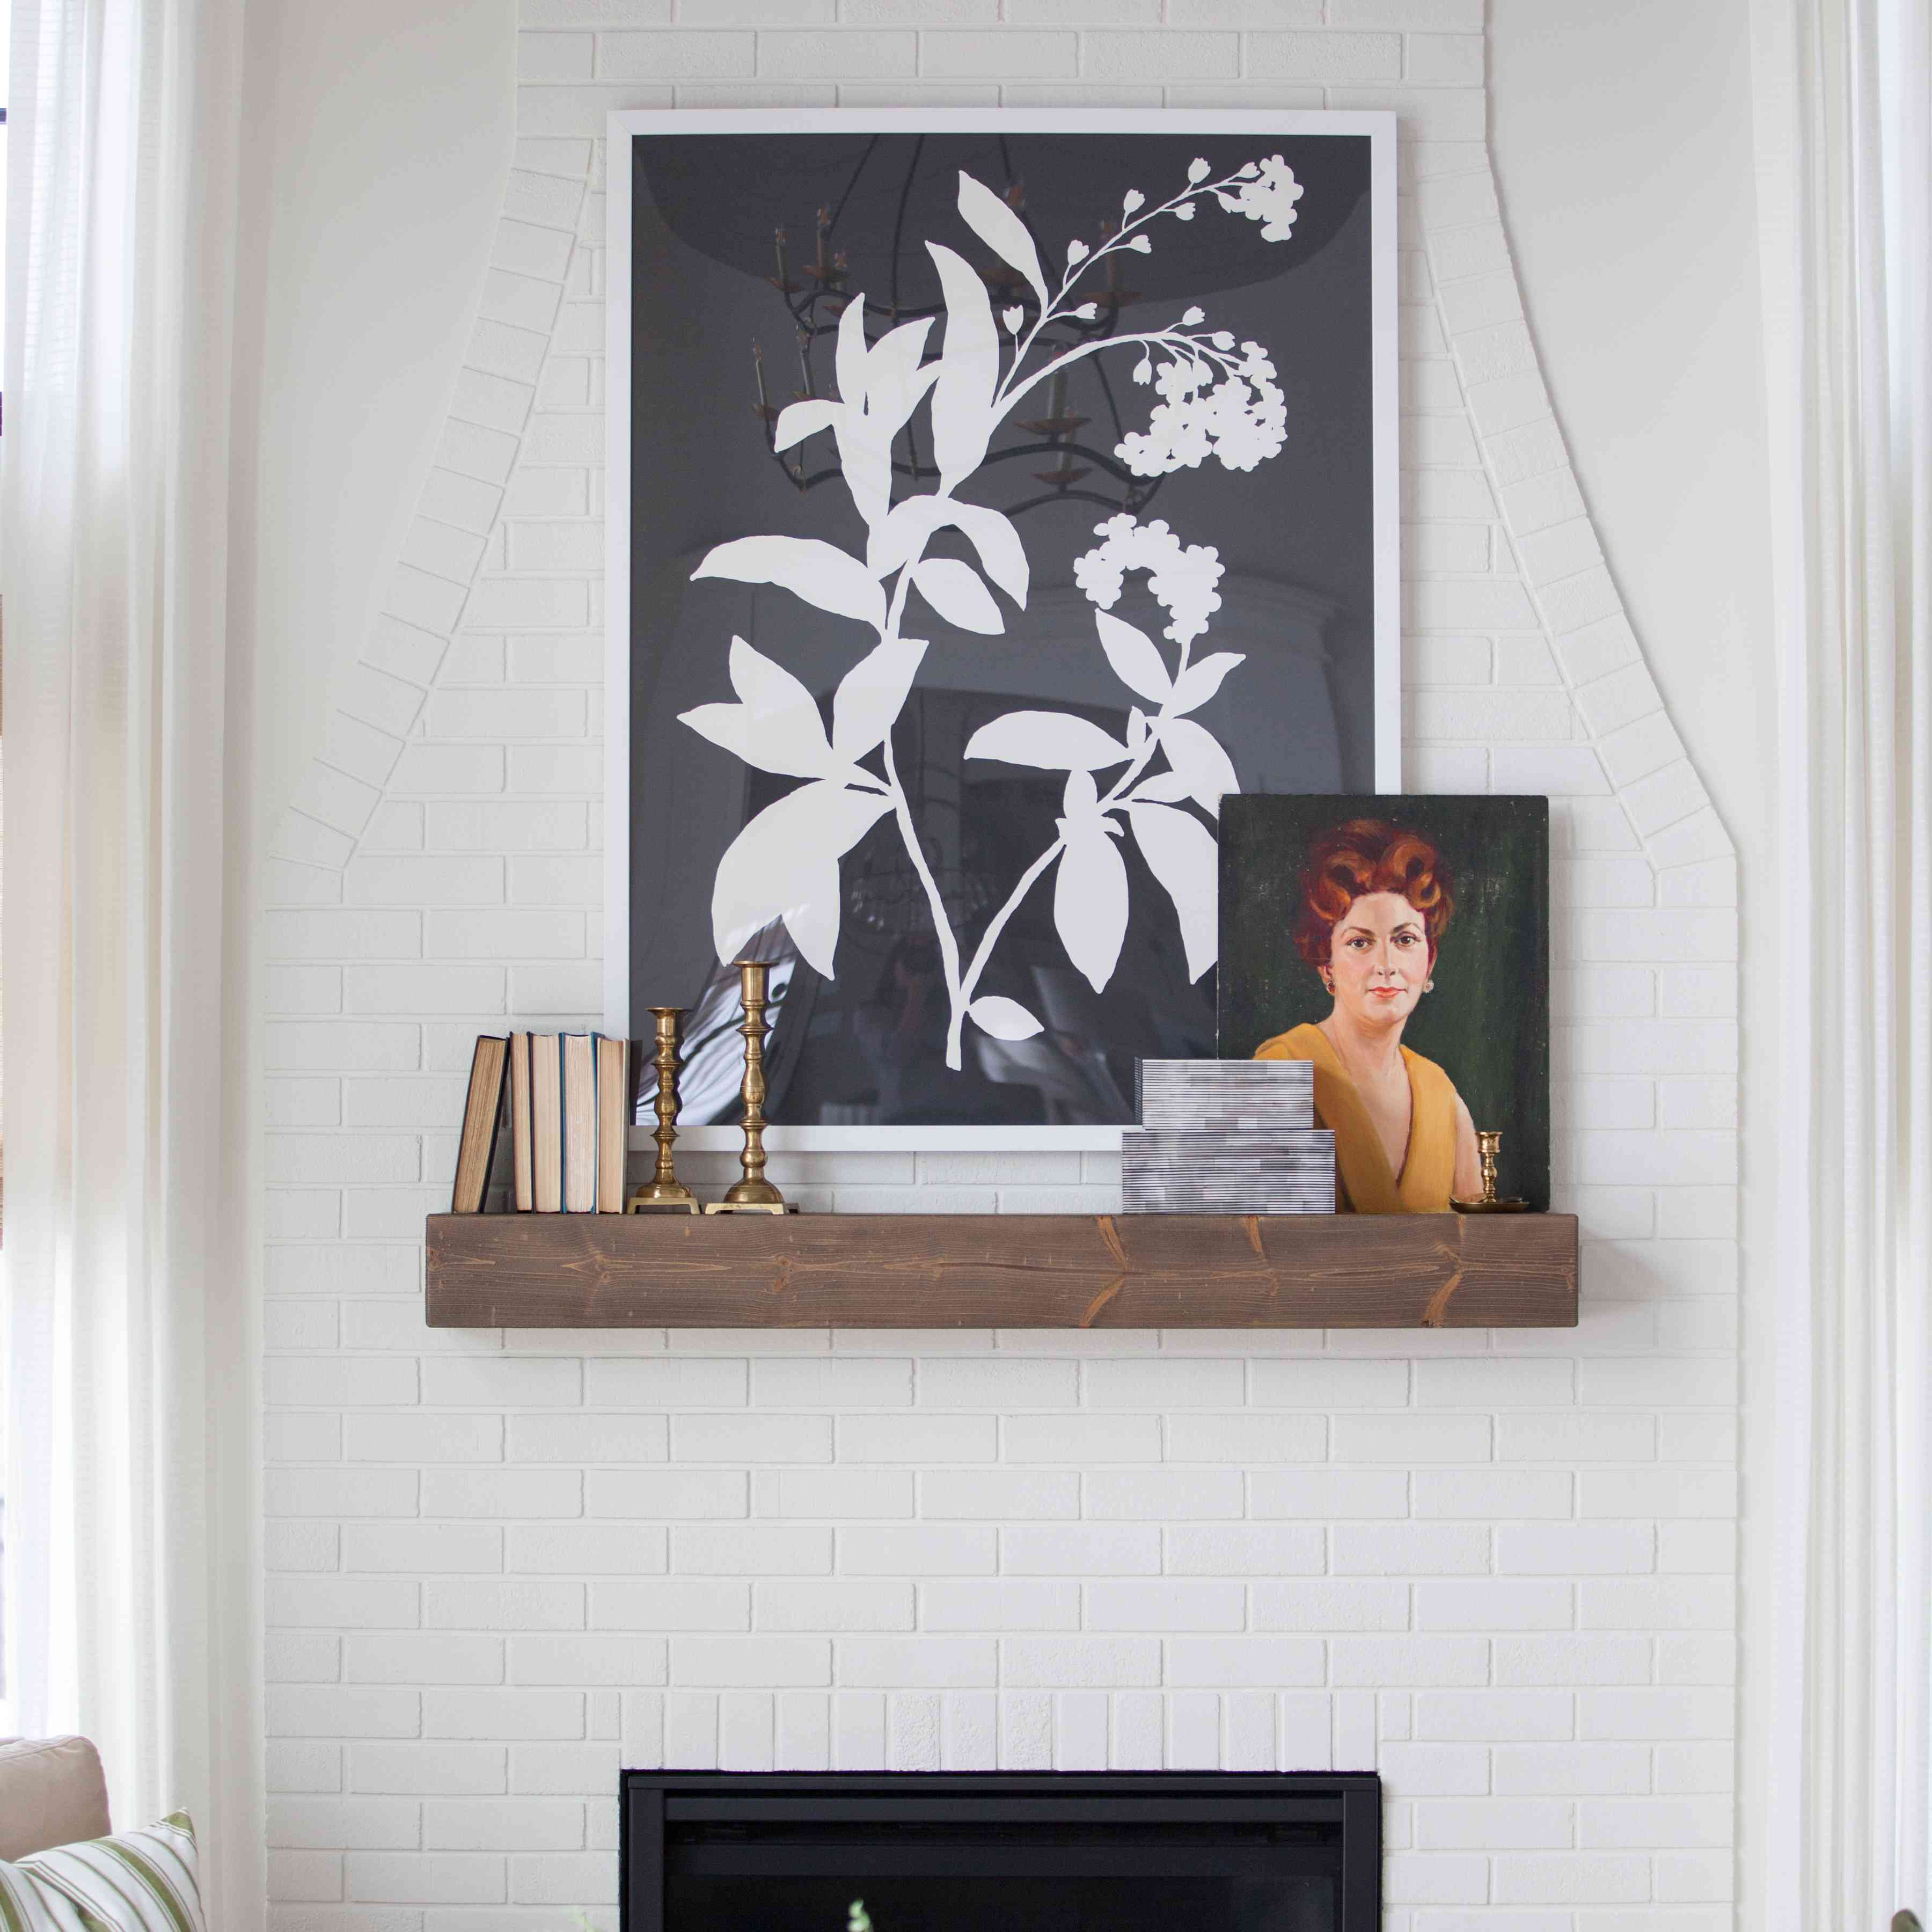 one room I'll never forget - fireplace with mantel